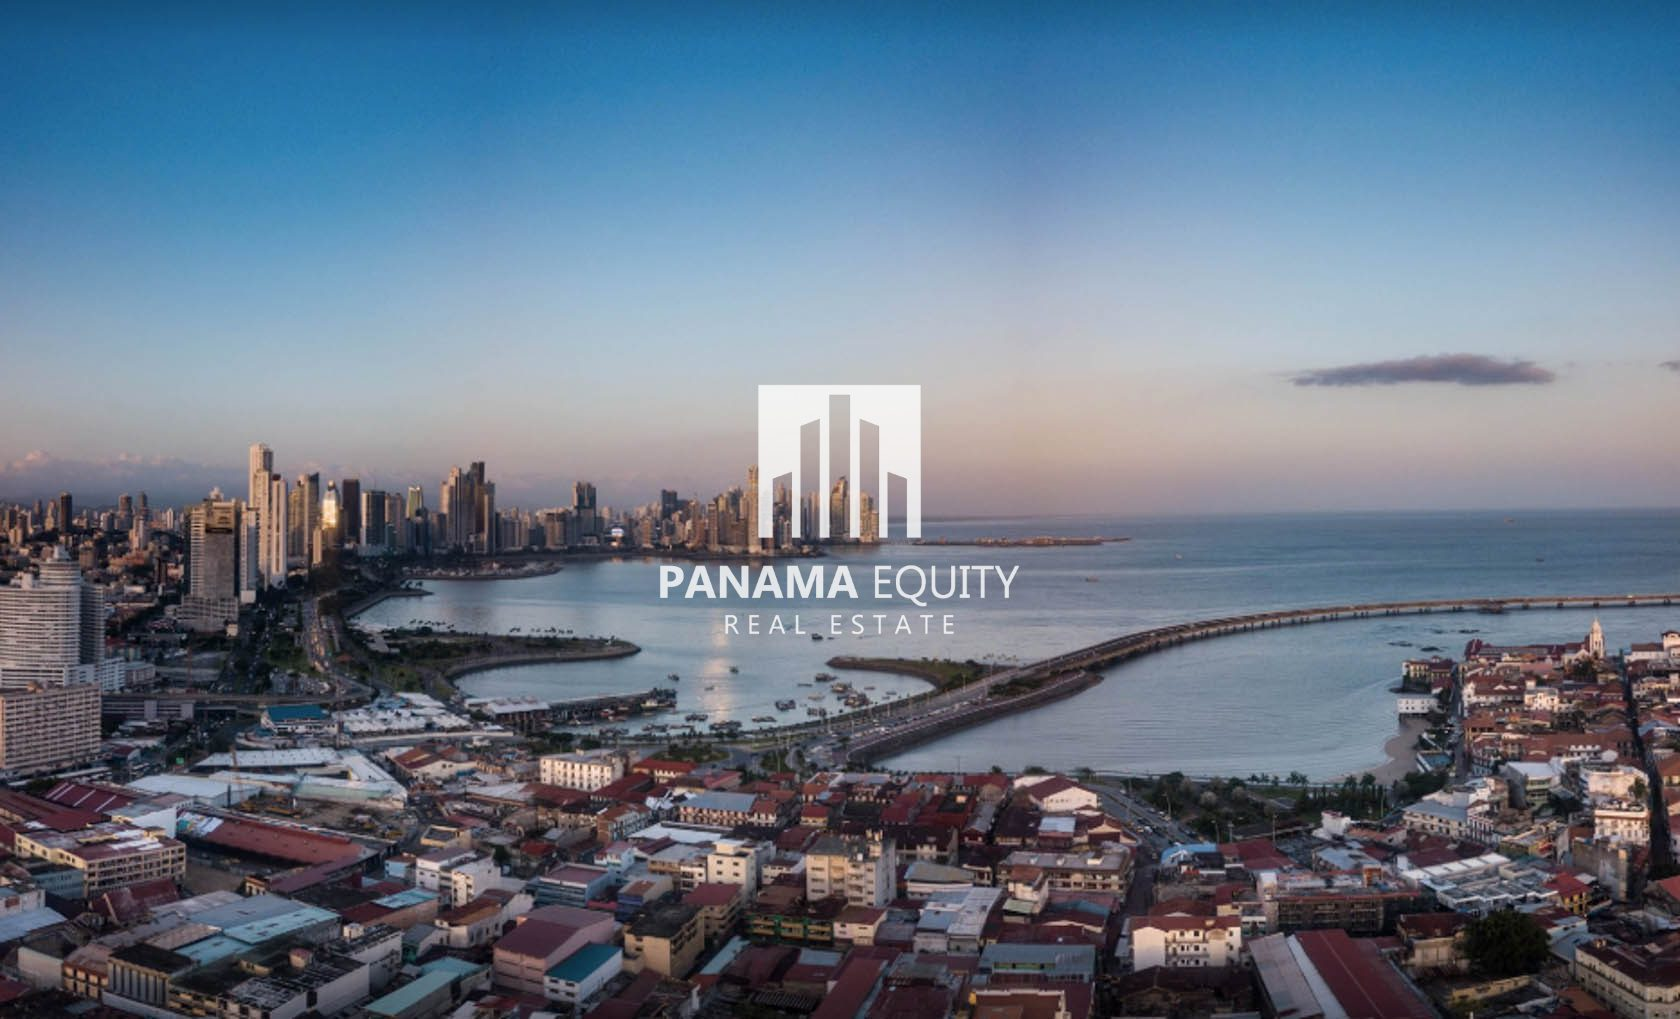 The Most Privileged View of Old Town Panama